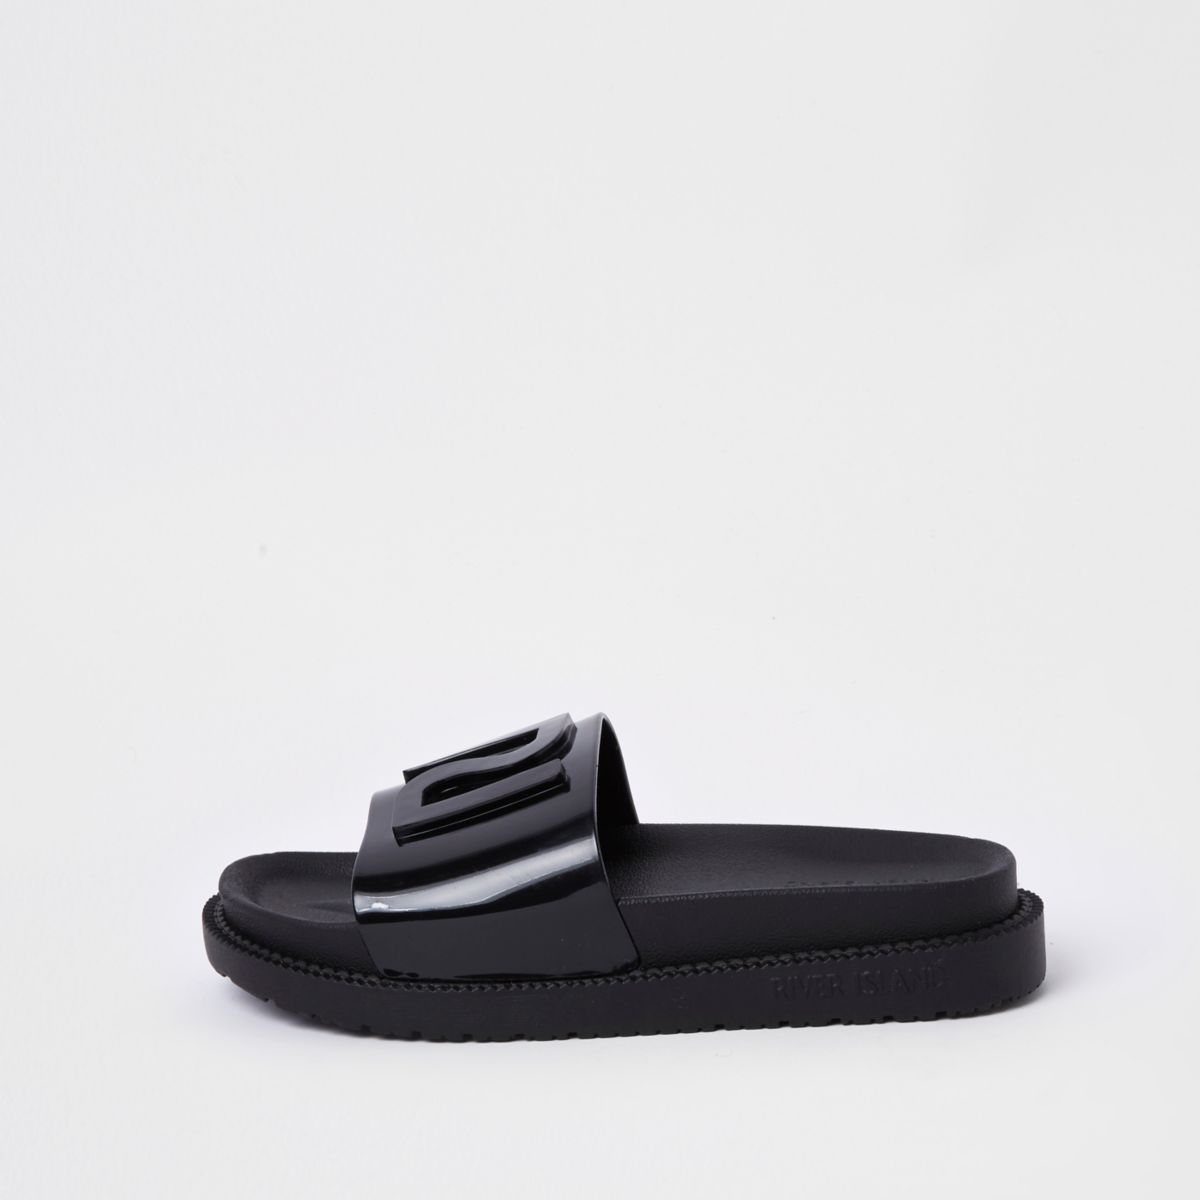 River Island Pool sliders - black 4VzILu